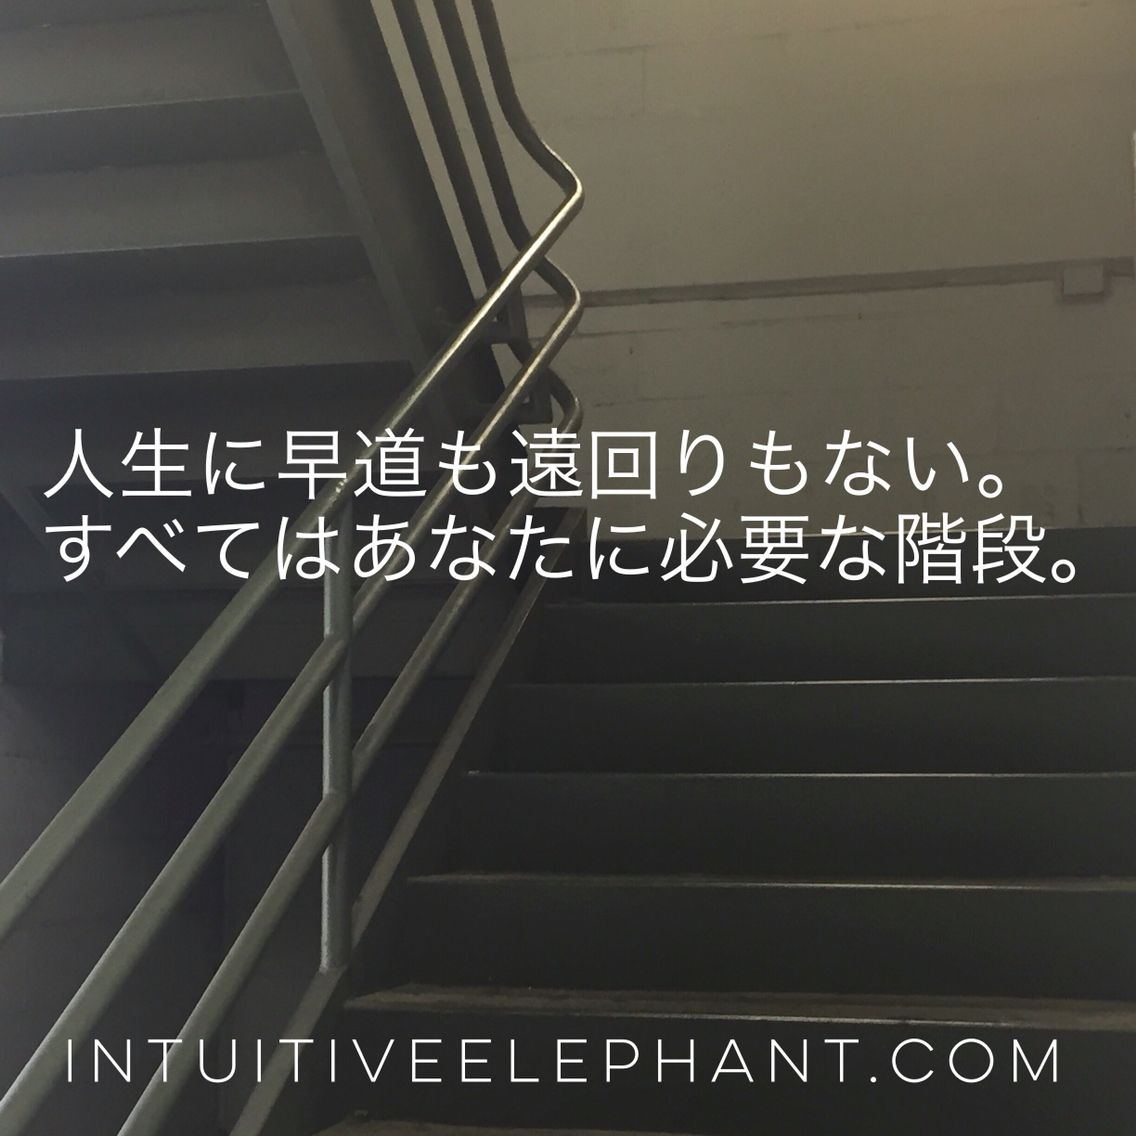 Life has no shortcuts or detours. Everything is a stair step you need.